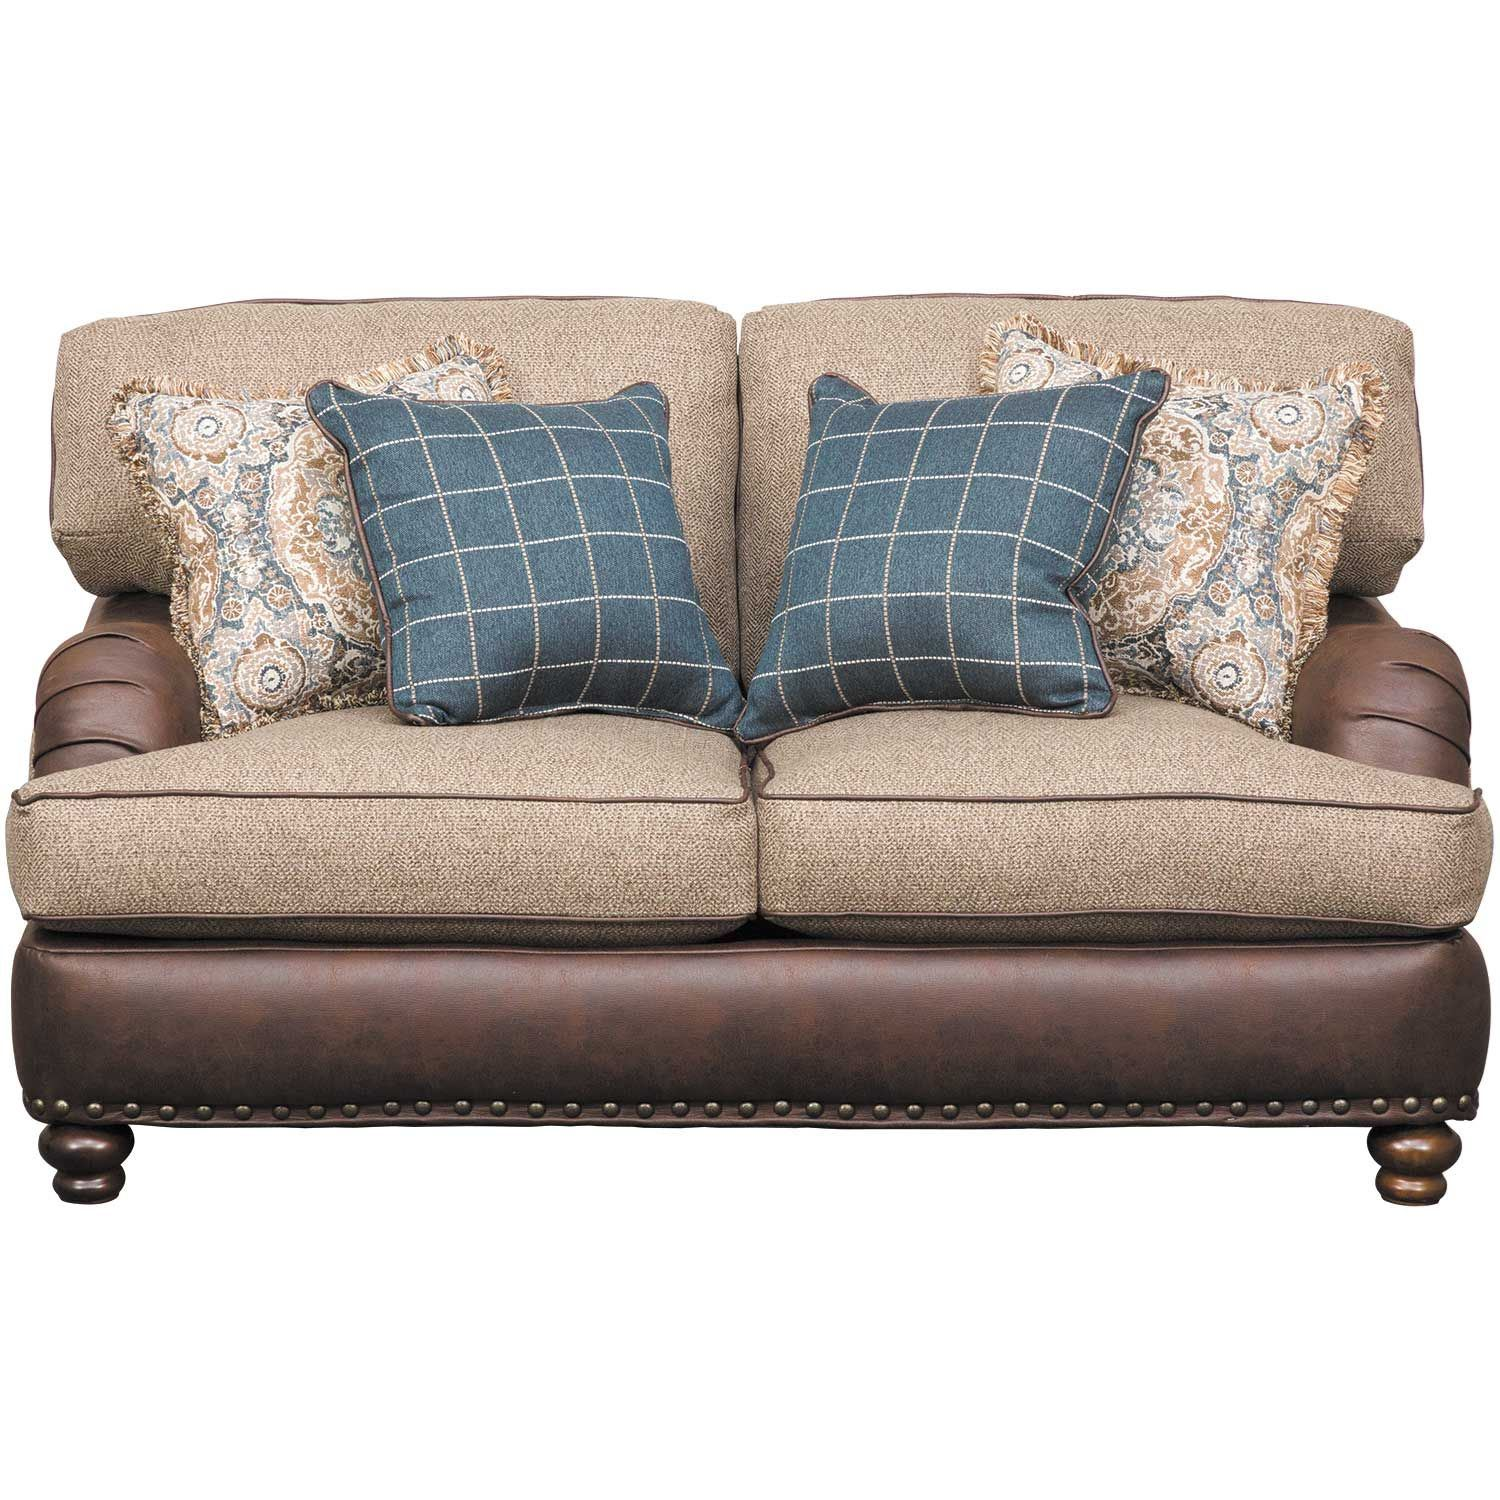 Brewhouse Loveseat 2002 Corinthian Furniture Afw Com